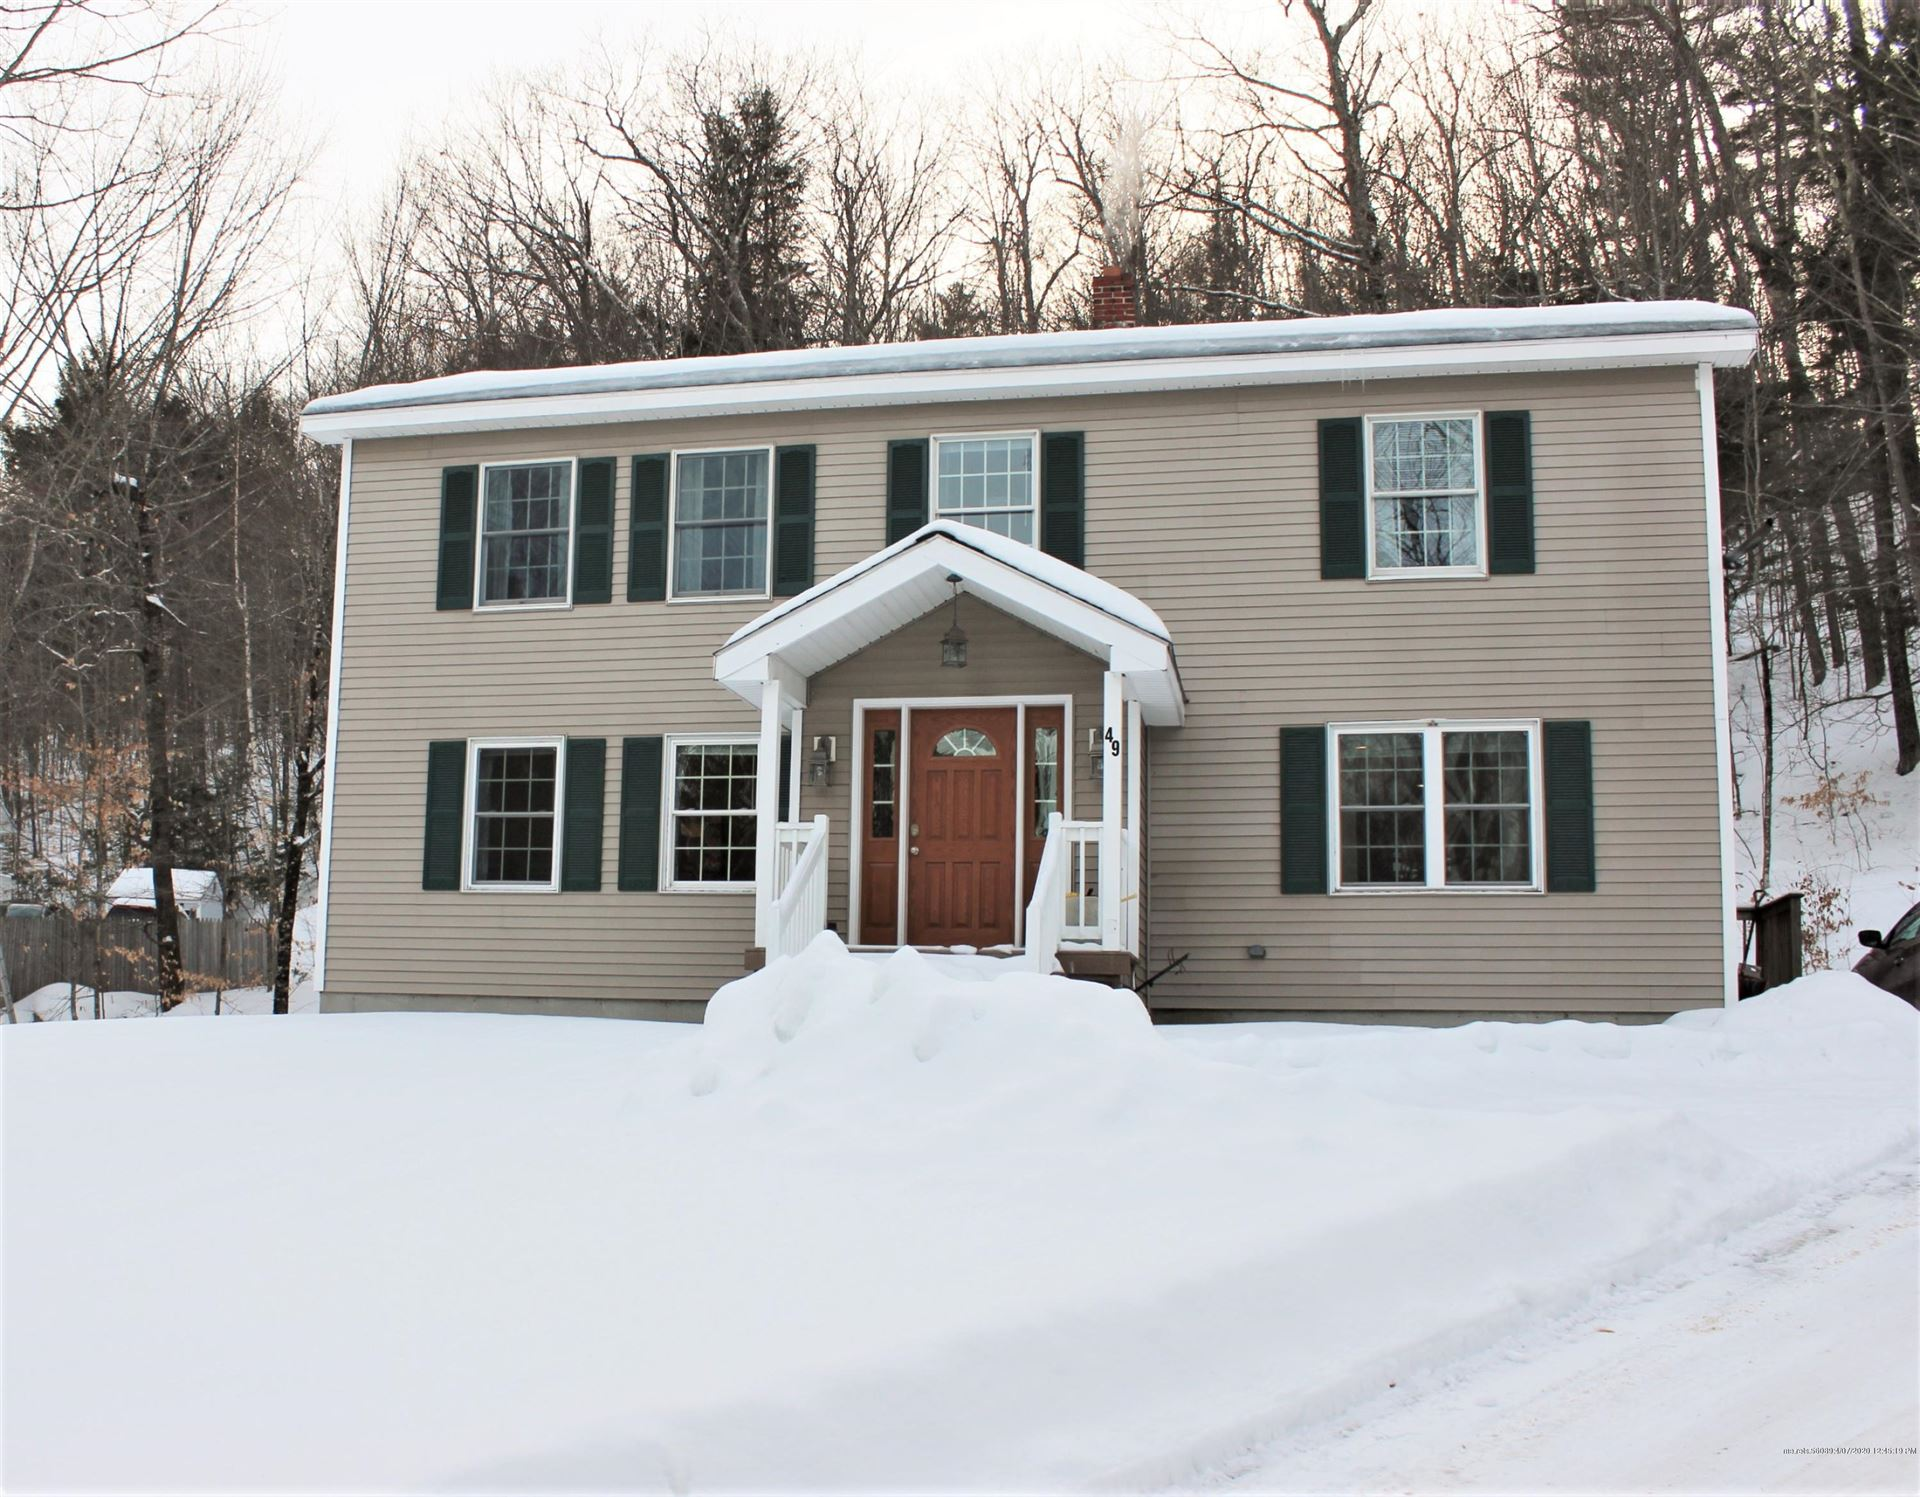 Photo of 49 Mckenny Drive, New Gloucester, ME 04260 (MLS # 1444894)